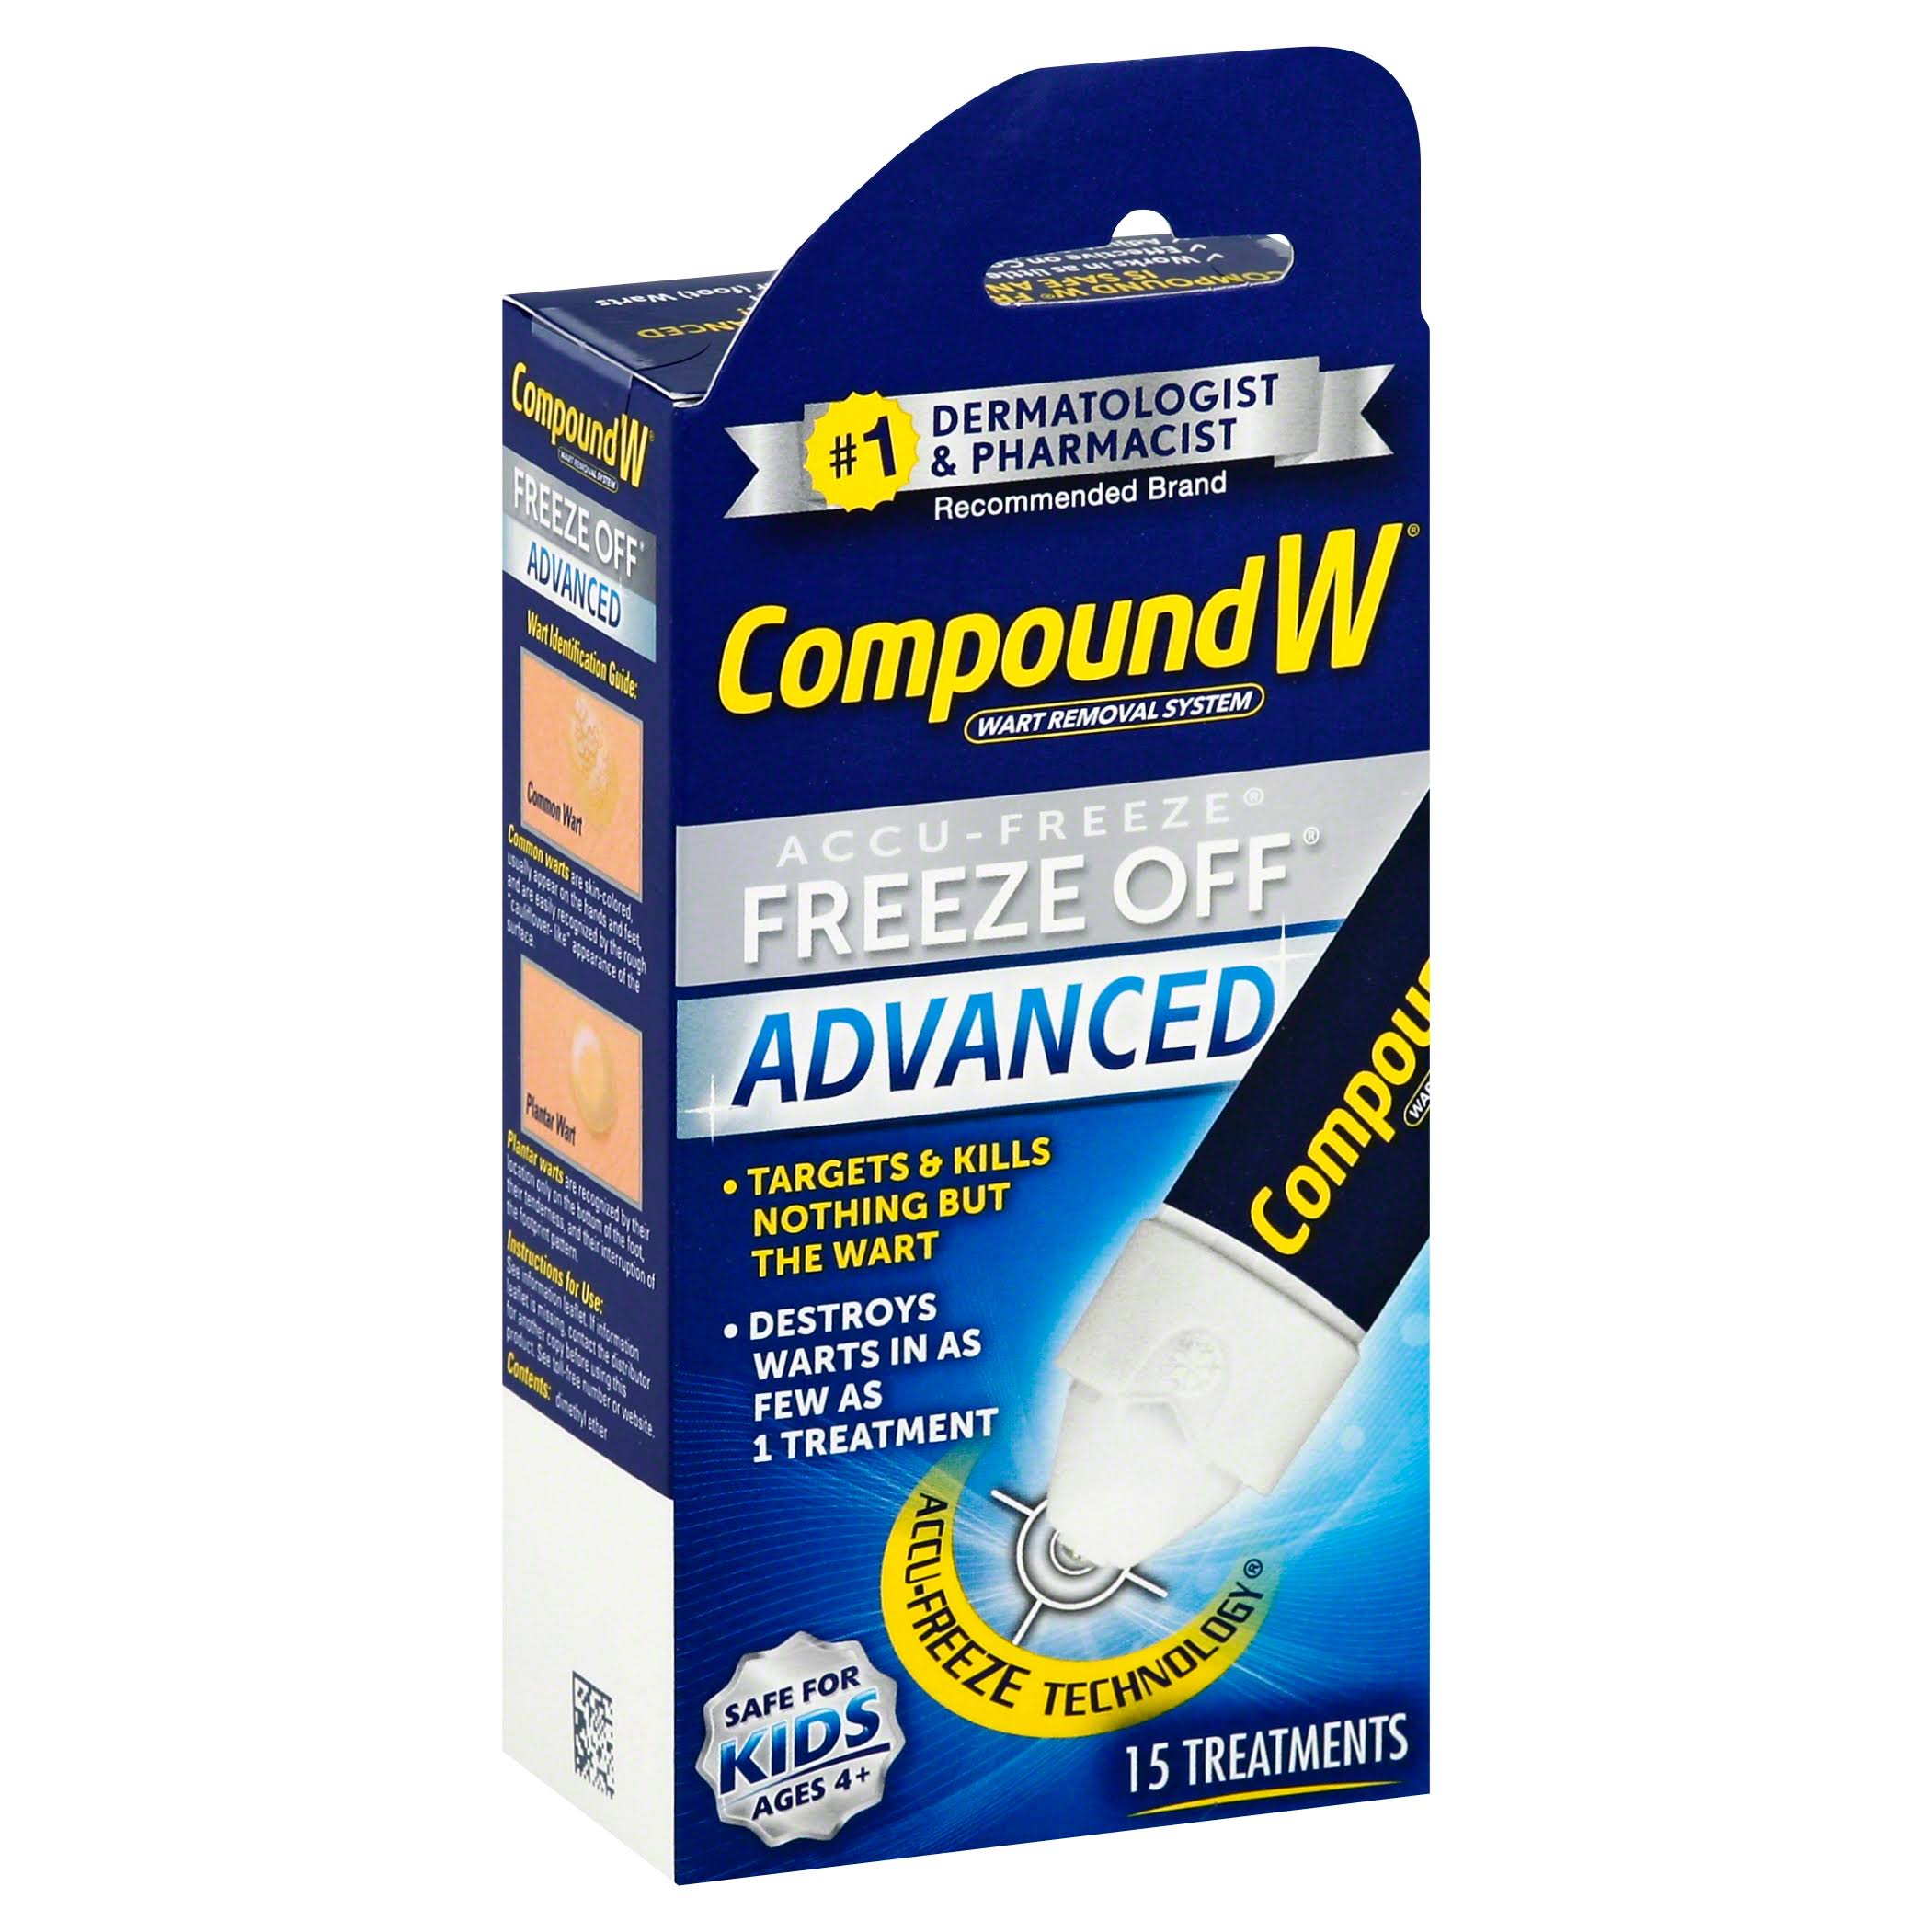 Compound W Freeze Off Wart Removal System - 15 Treatments